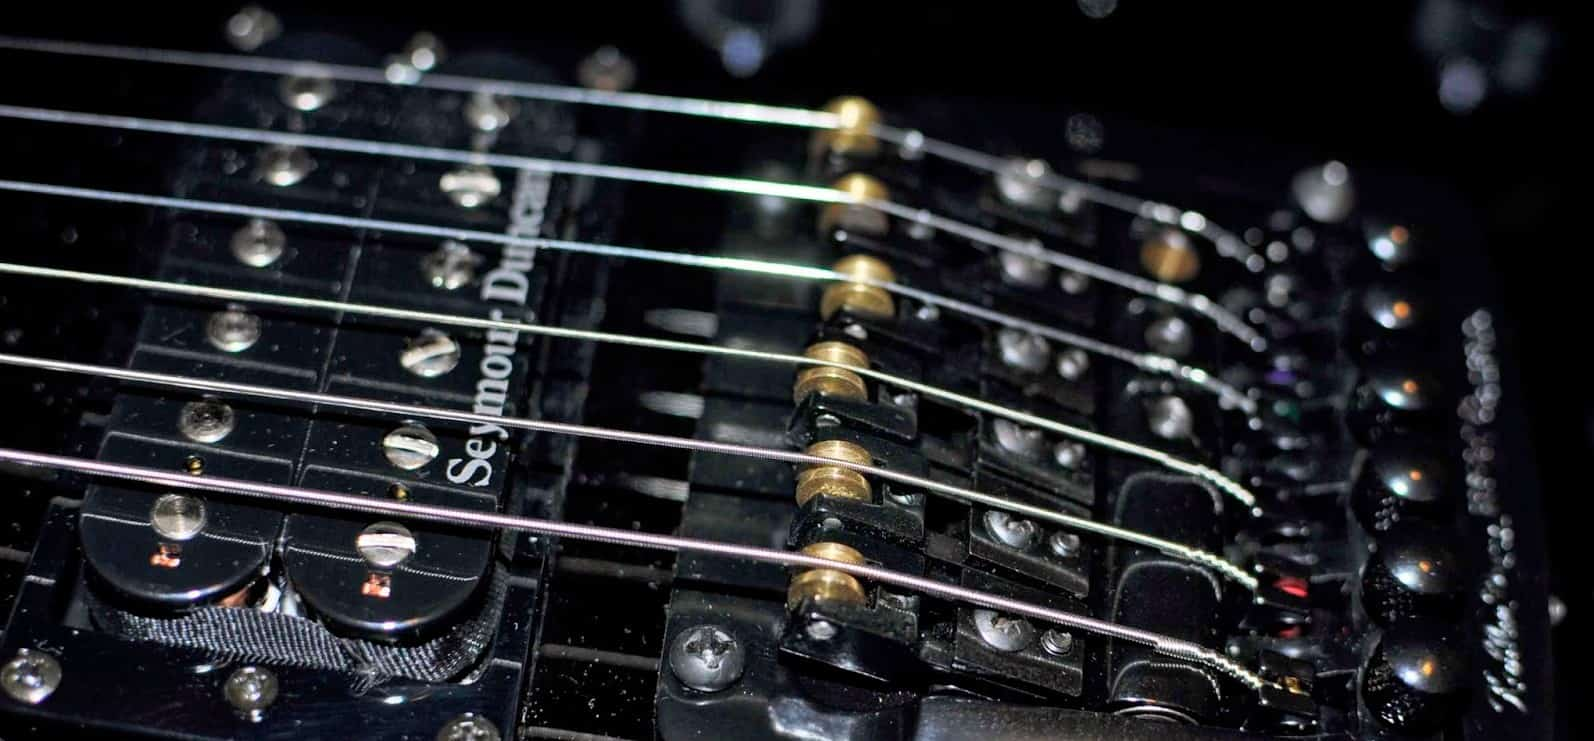 Seymour Duncan Going From A Stop Tailpiece To A Floating Bridge Guitar Pickups Bass Pickups Pedals